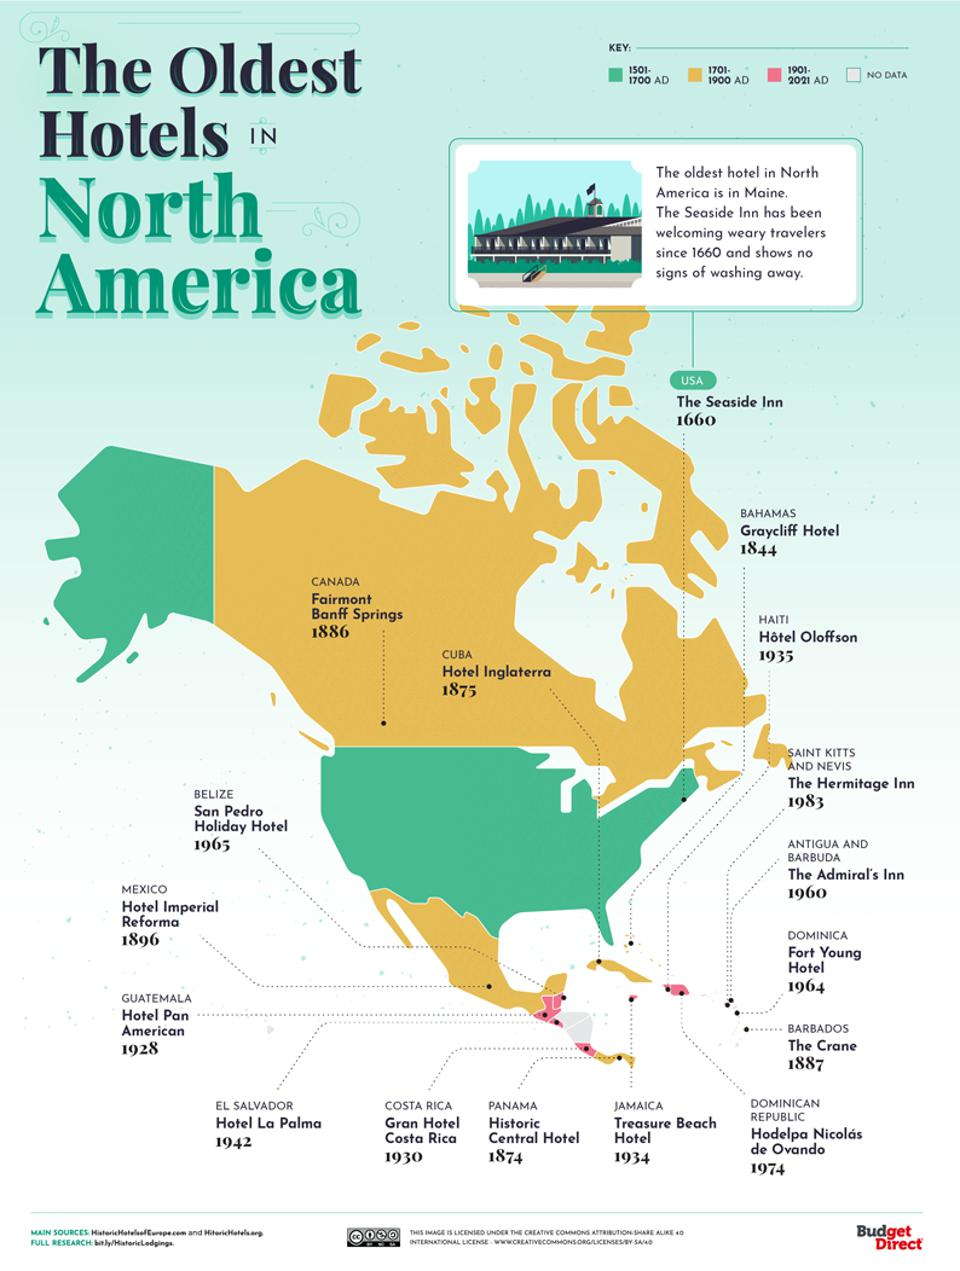 A map of the oldest hotels in the North America.